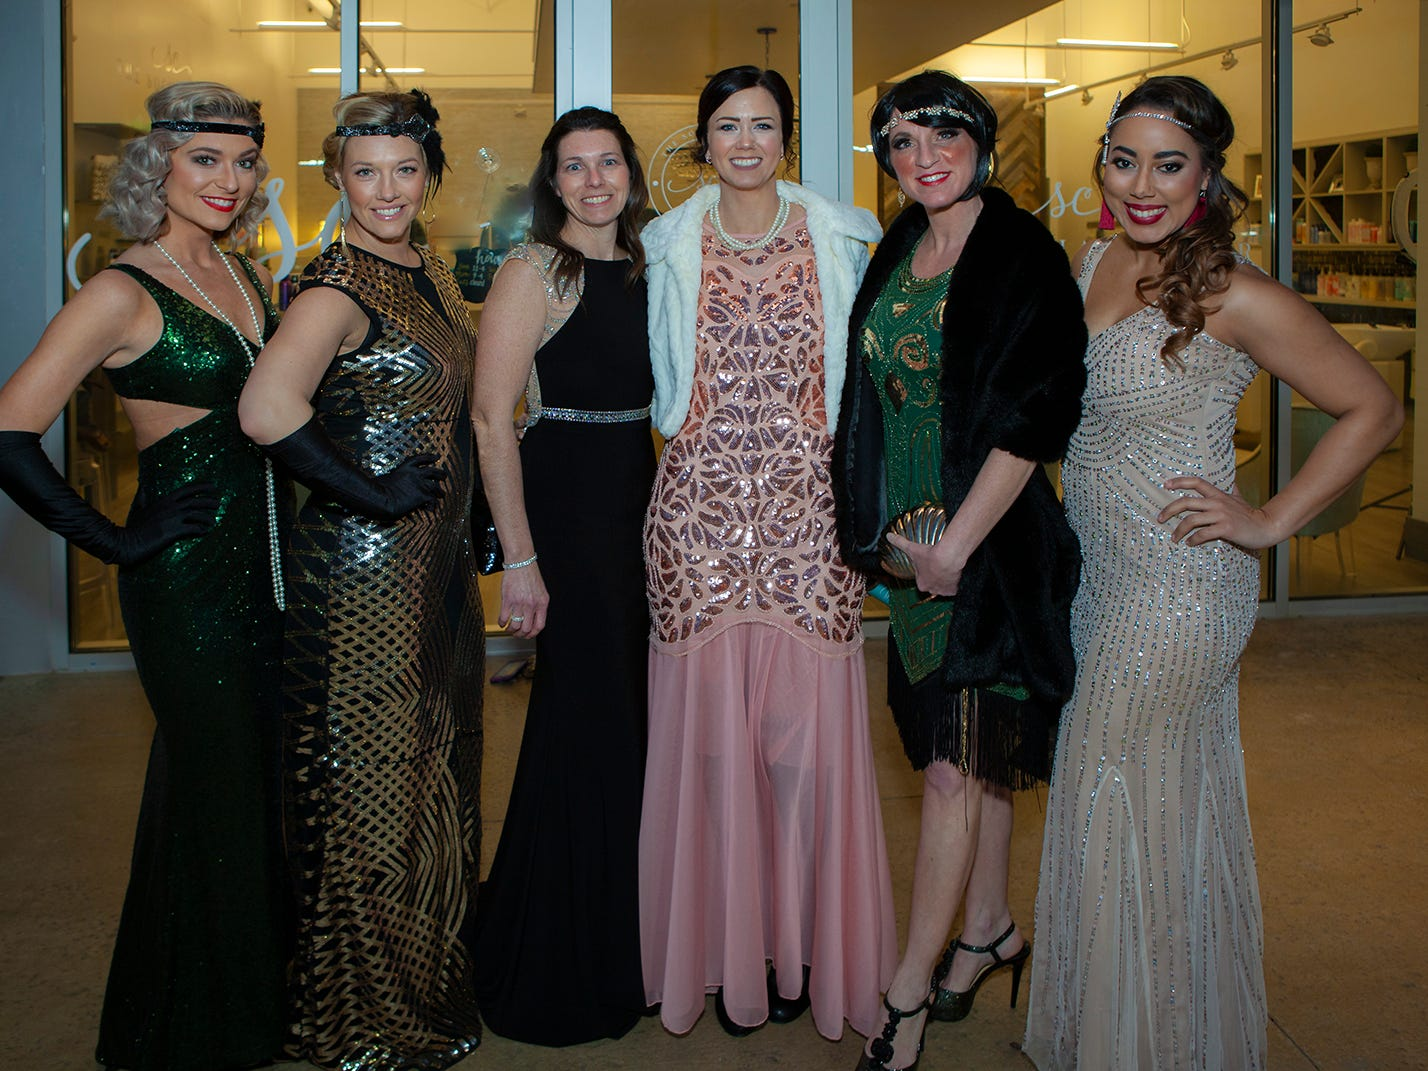 Brittany Brandon, Natalie Burt, Melanie Rooker , Heather Bills, Christy Dyer and Amelia Dap at The Gatsby Party, hosted by the Alzheimer's Association at The View at Fountains Saturday, March 16, 2019.